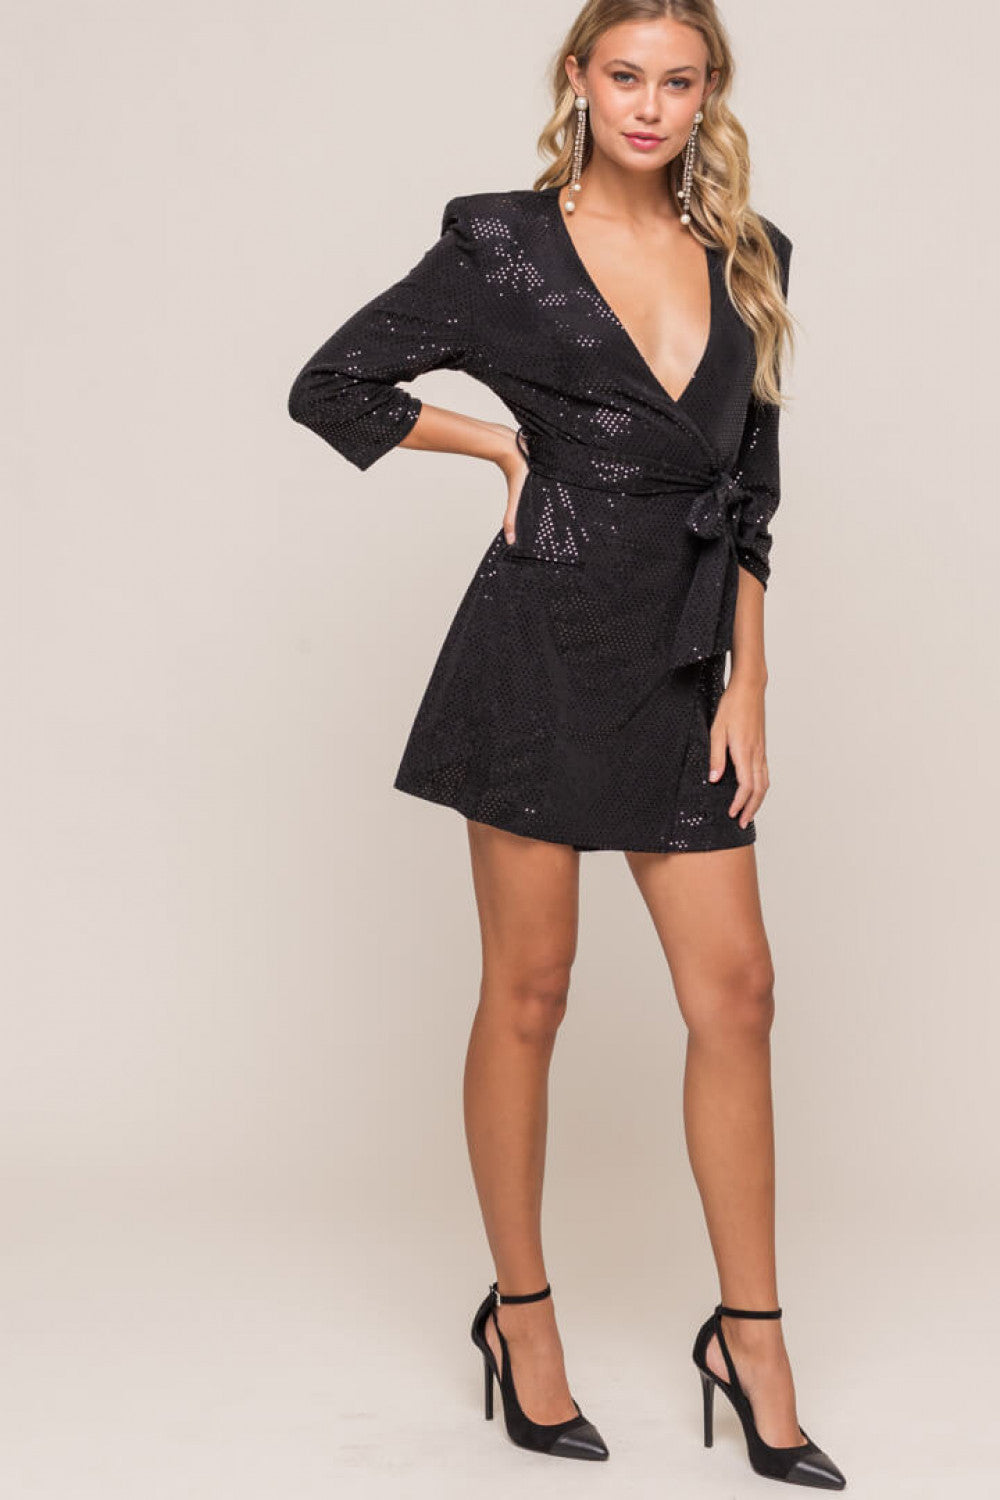 Black Plunging Wrap Mini Dress - Dress - LUSH CLOTHING - MOD&SOUL